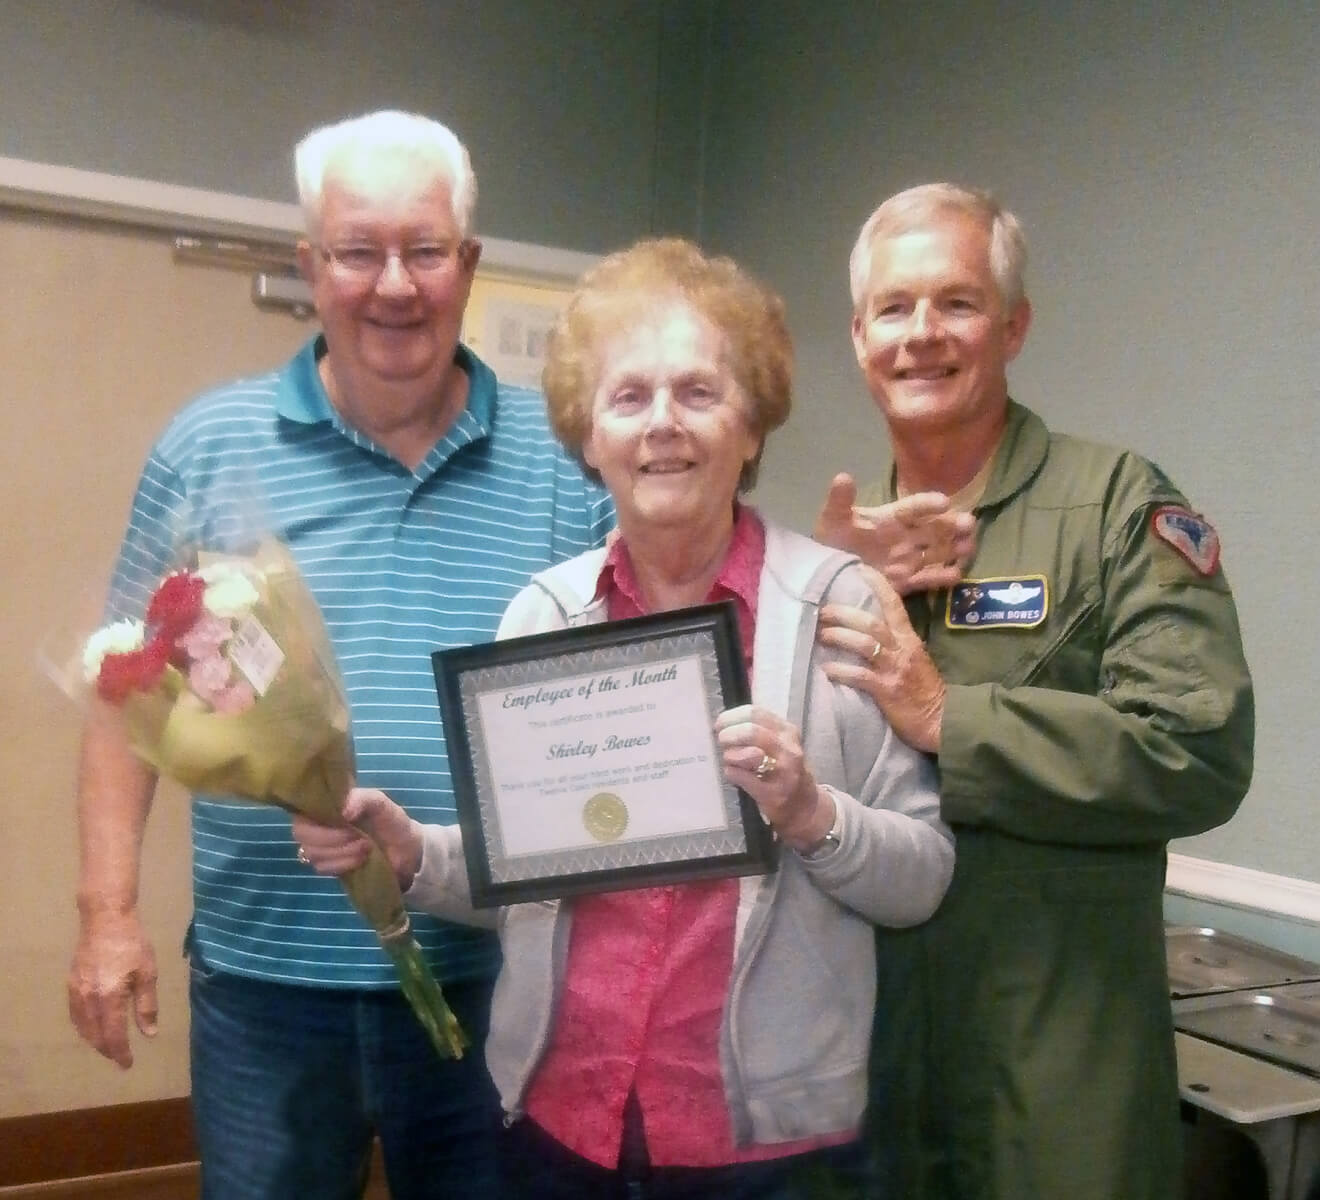 Shirley Barnes, a resident of Twelve Oaks with her husband and son after winning employee of the month